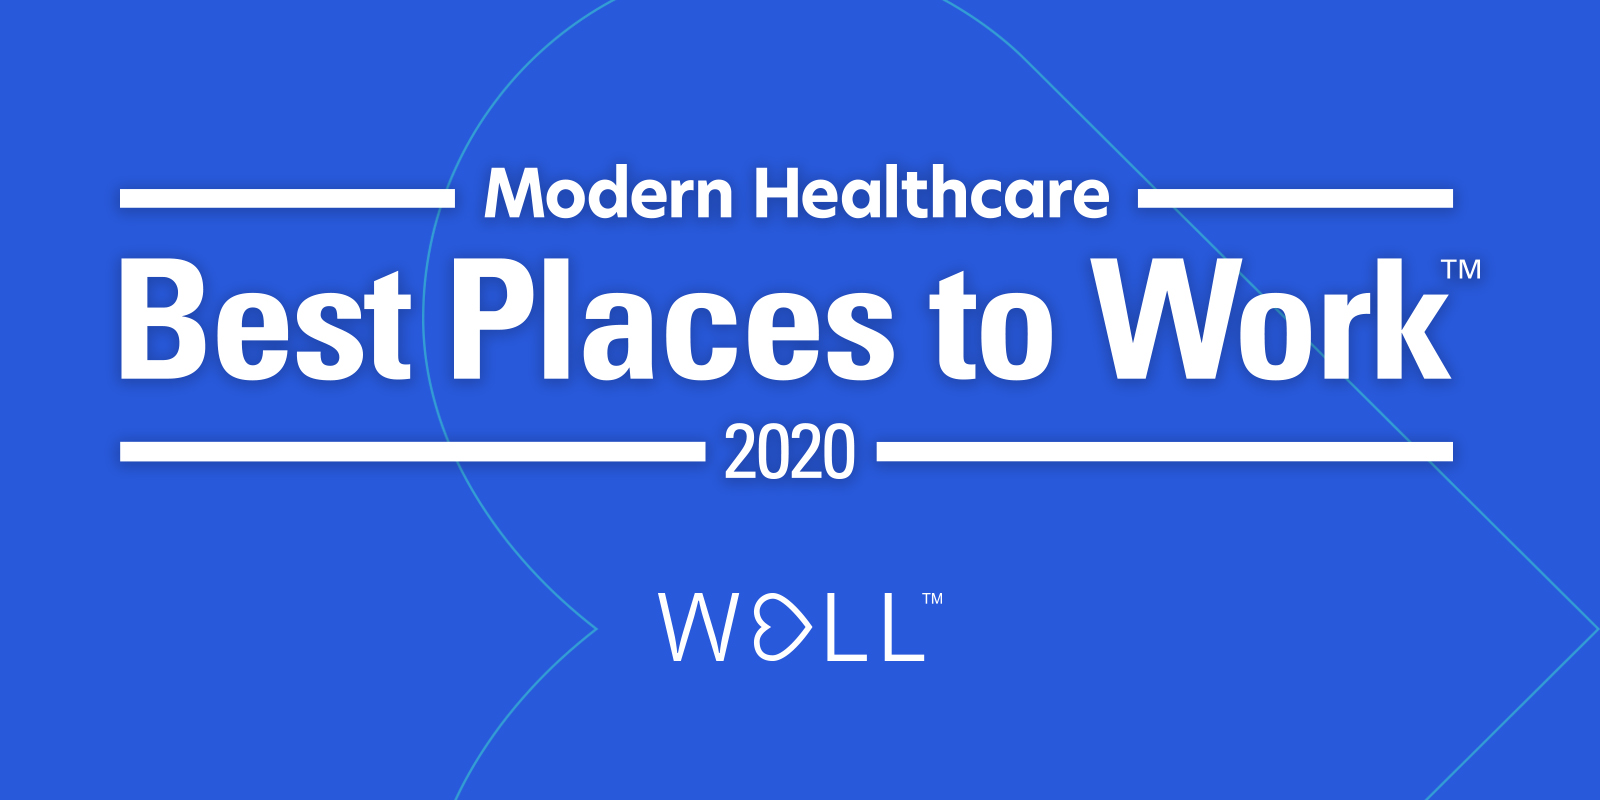 WELL Health recognized as one of the Best Places to Work in Healthcare in 2020